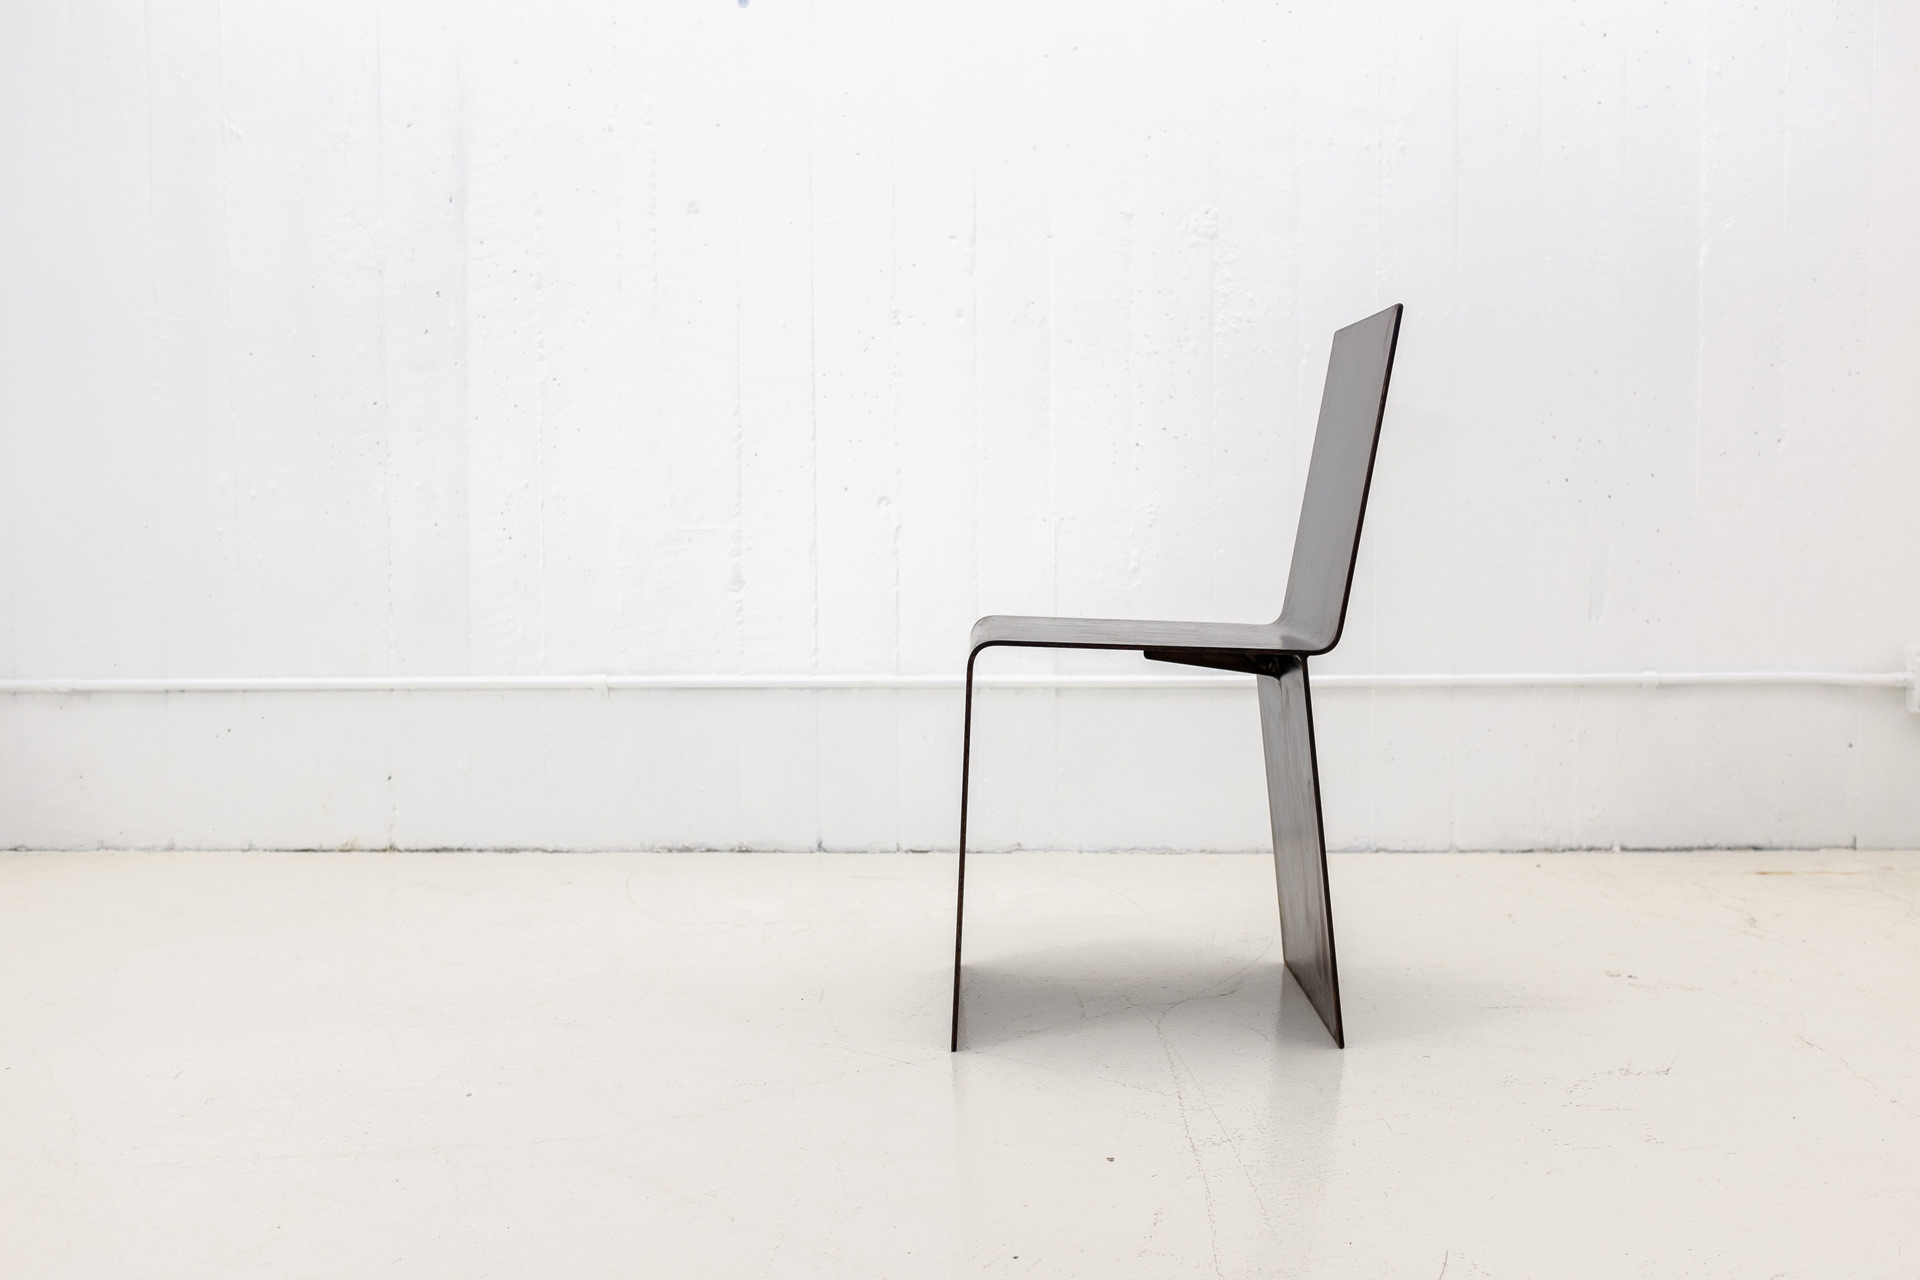 Bent Patinated Steel Chair